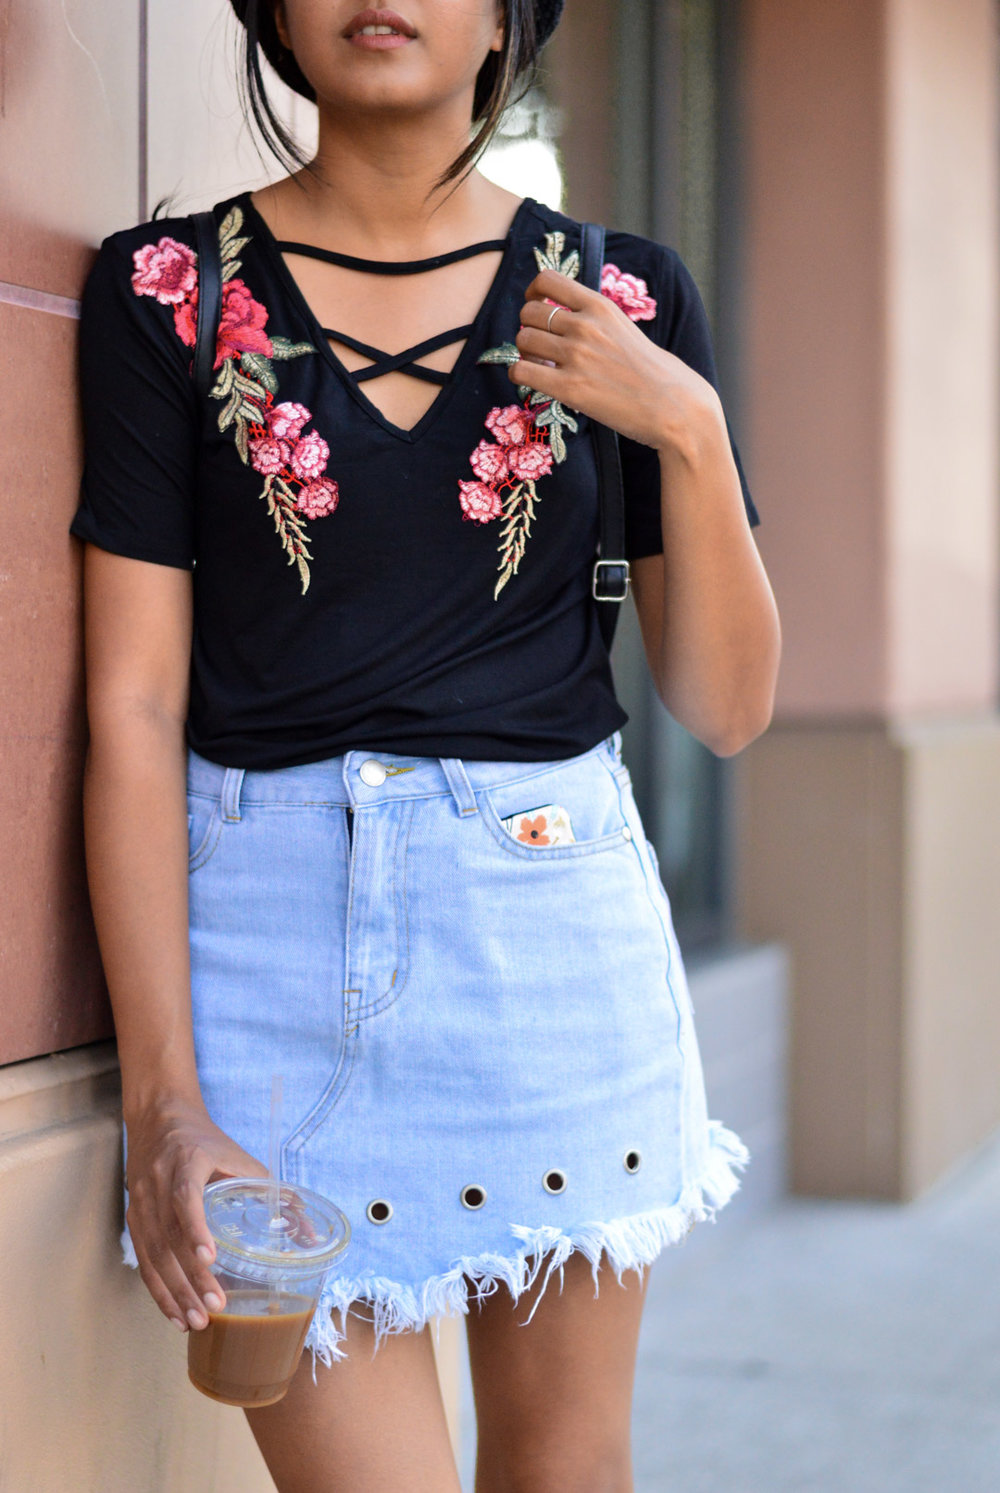 Casual-friday-style-denim-skirt-grommet-details-embroidered-tee 2